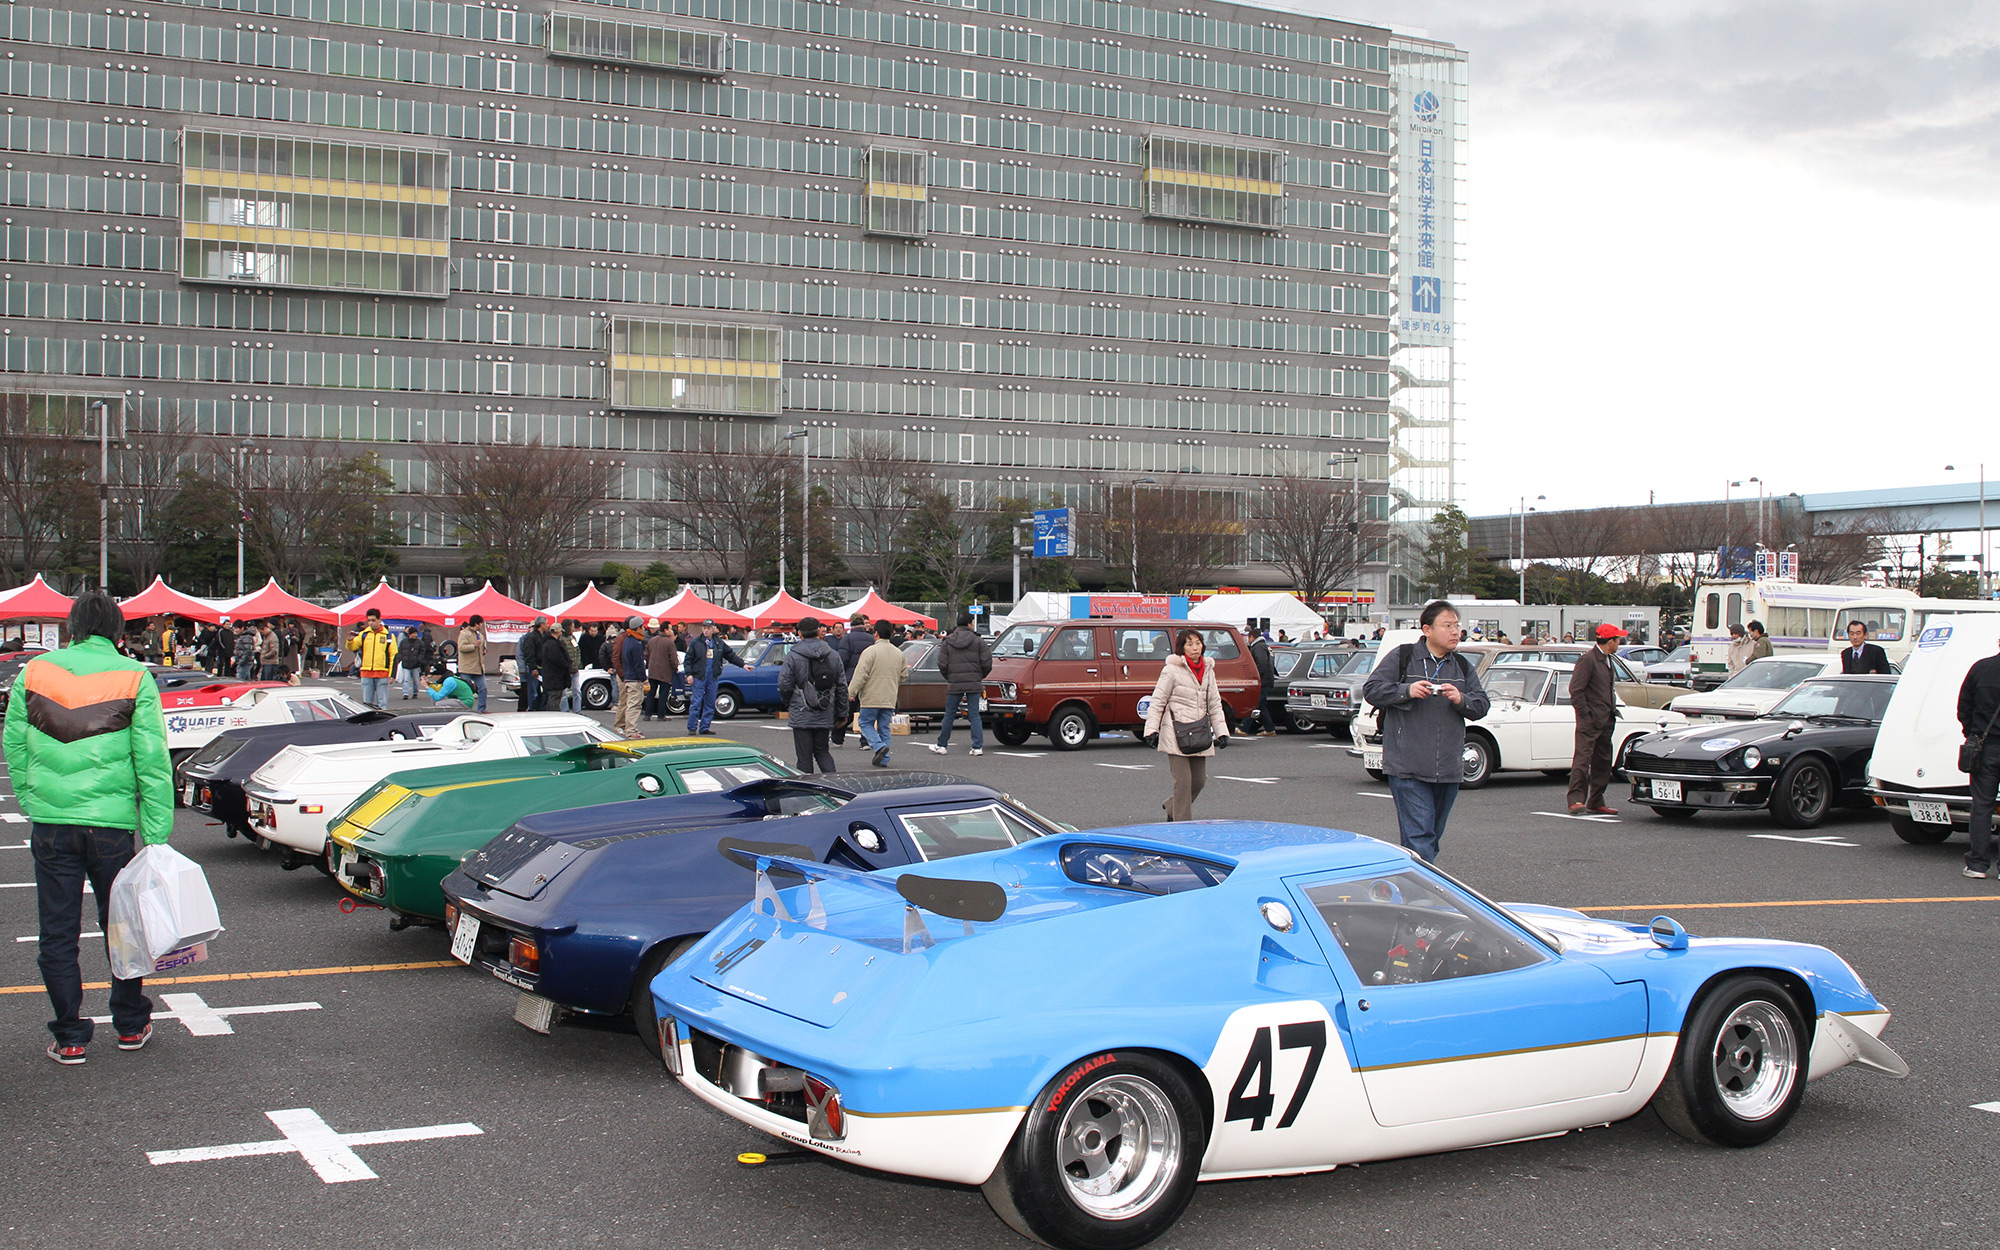 Could Japan's Car Collectors Predict The Next Big Fad?